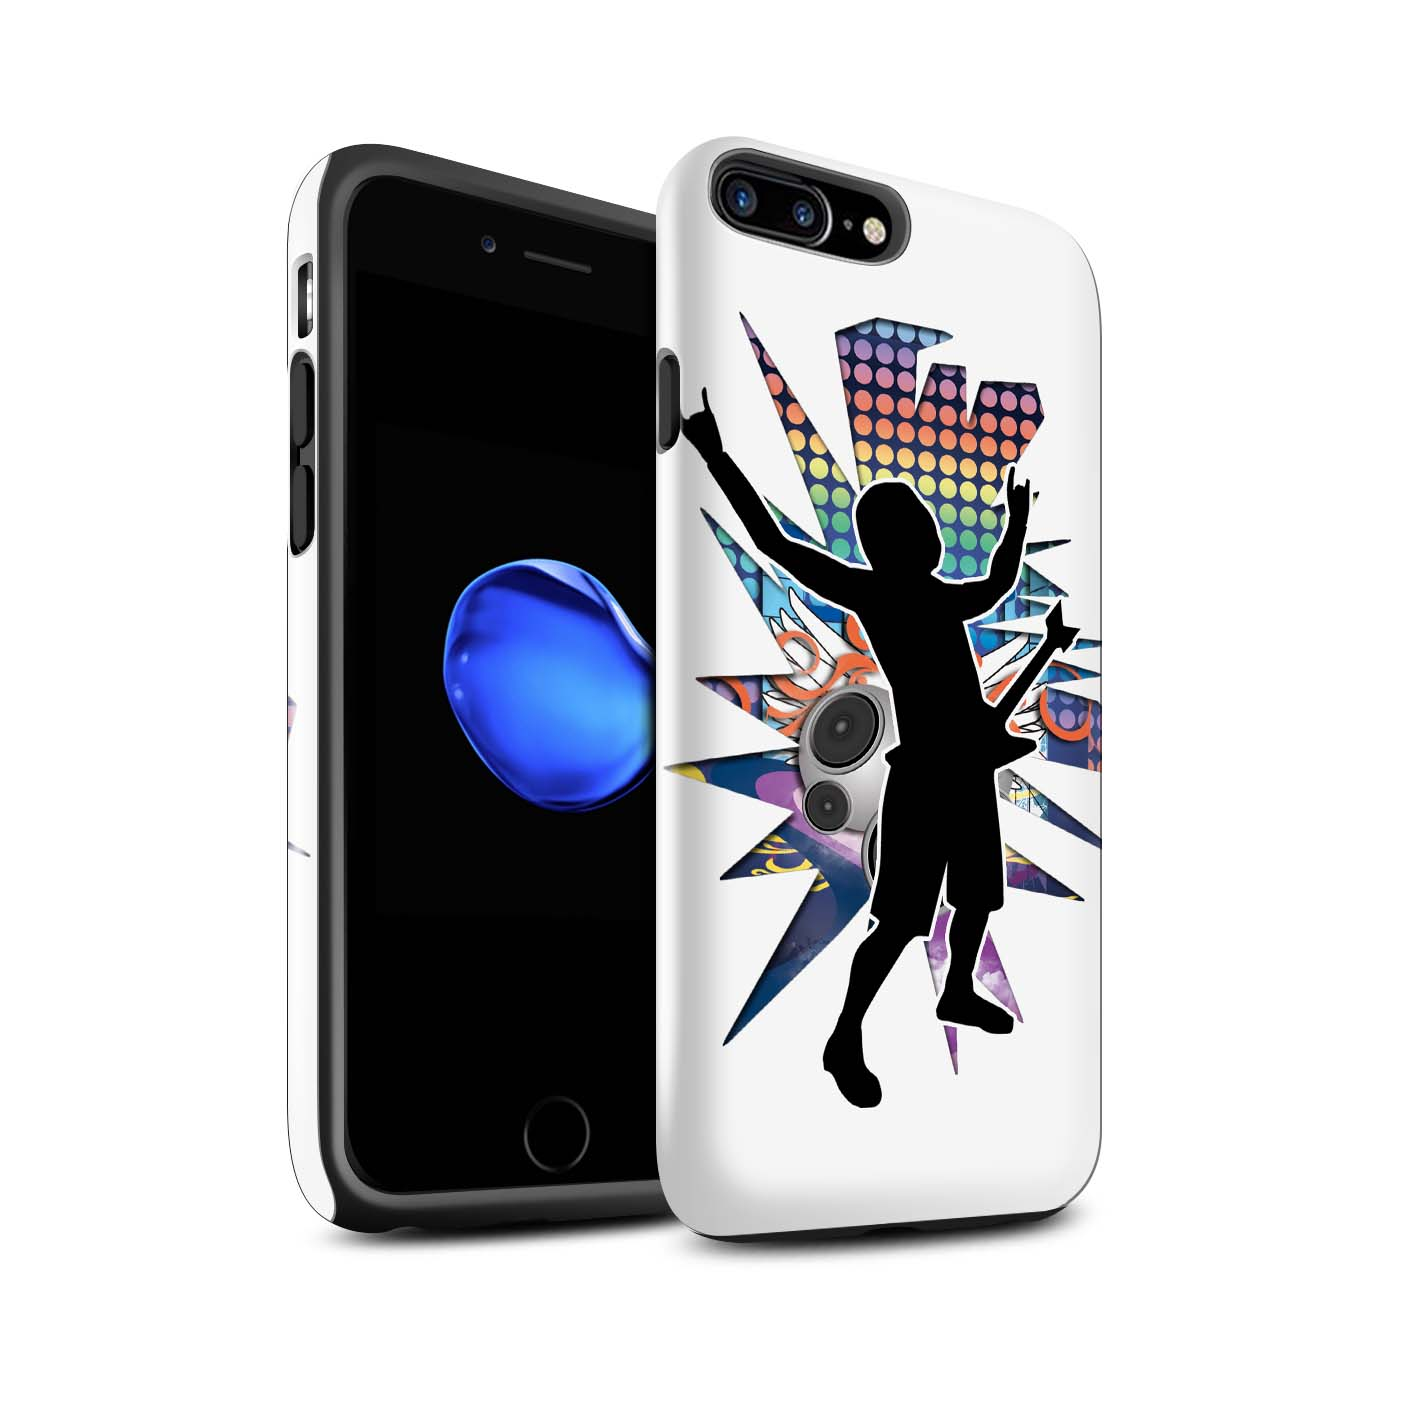 Robuste-Brillant-Antichoc-Etui-STUFF4-pour-Apple-iPhone-7-Plus-Rock-Star-Pose